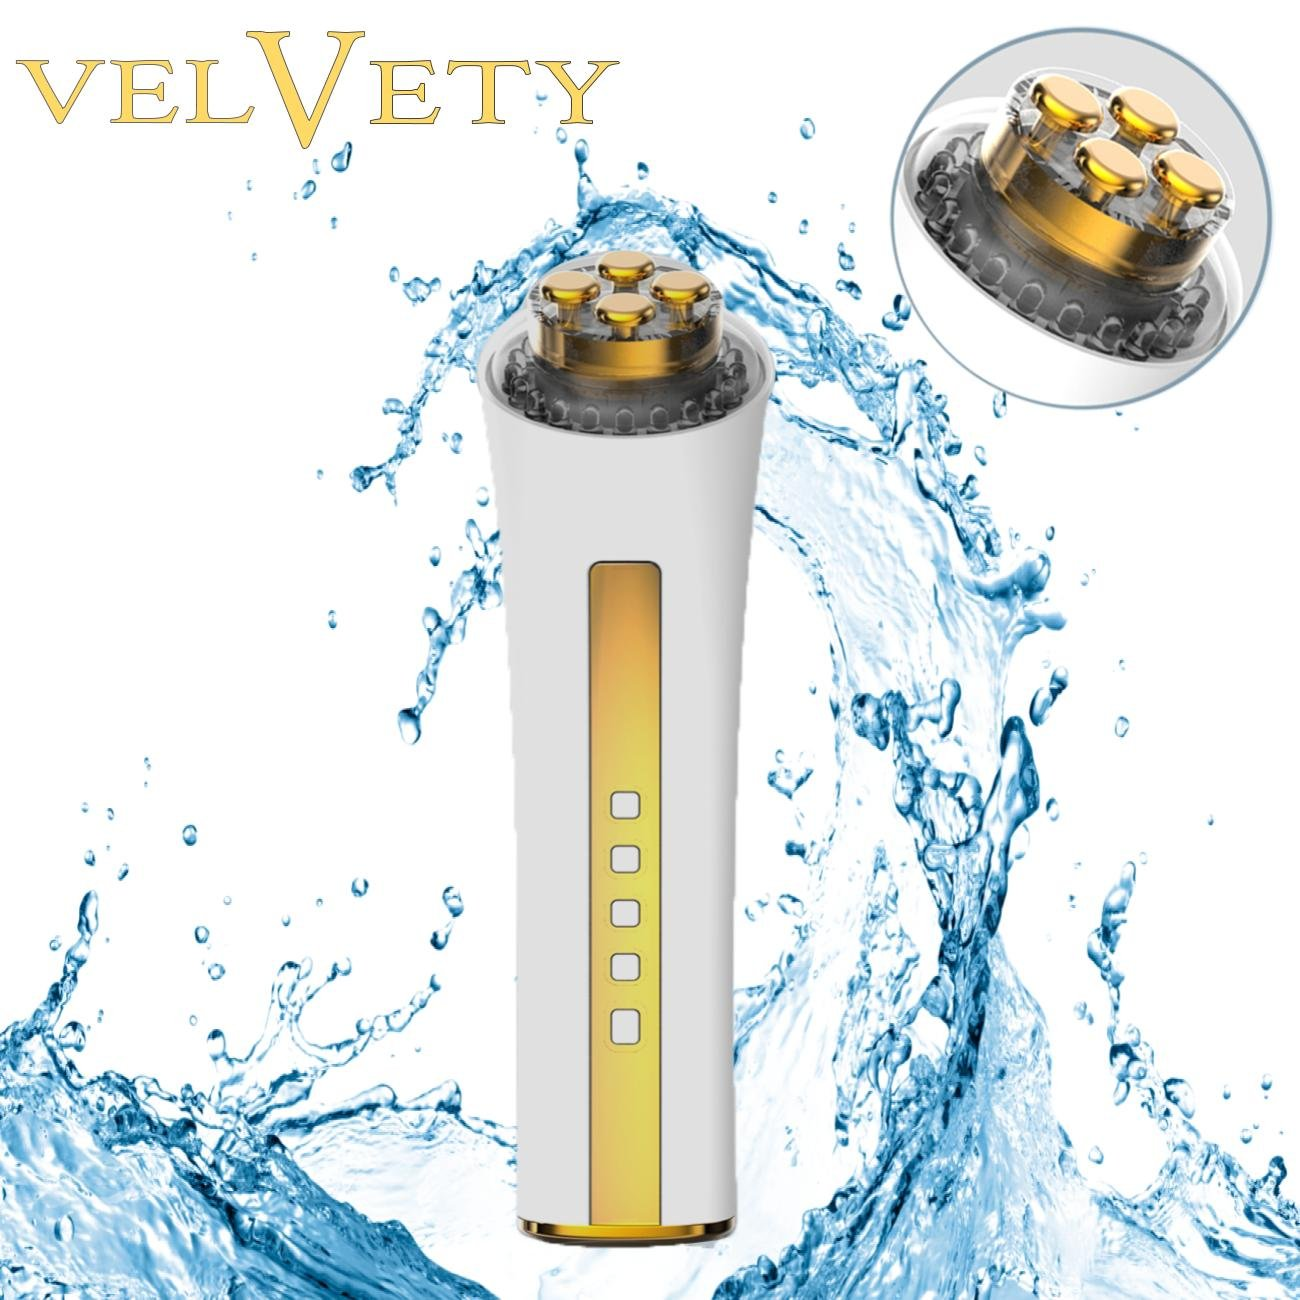 VELVETY Face Revolution 3 in 1 LED Skin Care Device Remove Wrinkles Acne & Blackheads LED Red Blue Yellow Massages Operator By Haleness Pro !